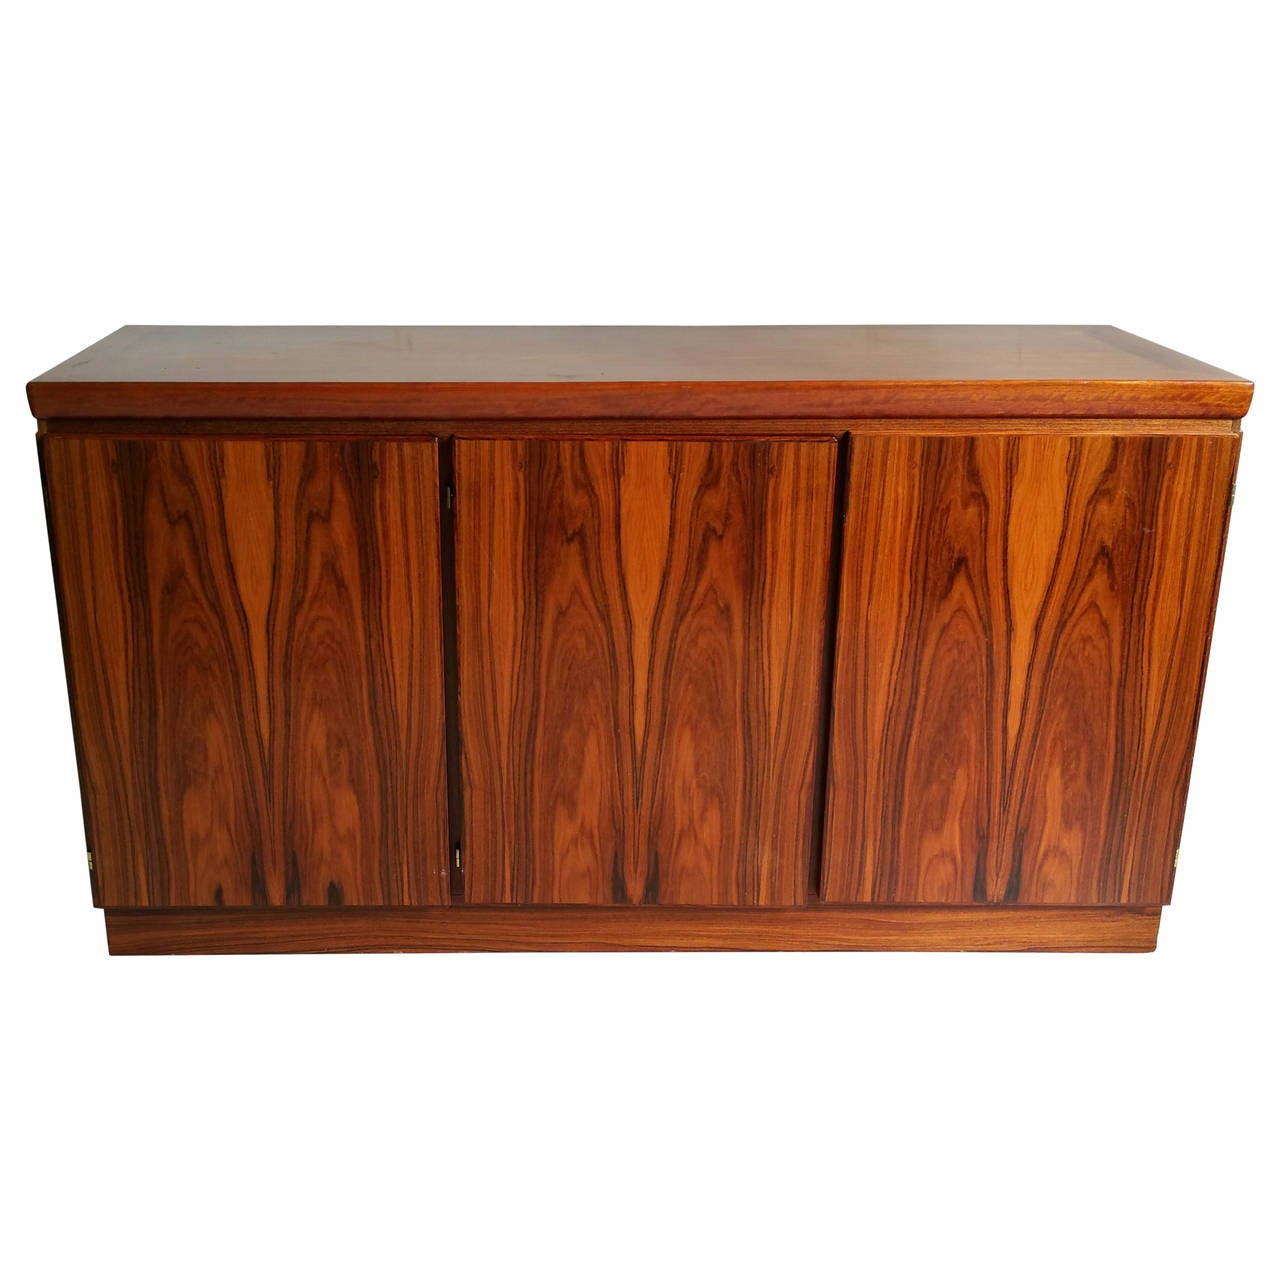 Classic Rosewood Cabinet or Server, Made in Denmark For Sale